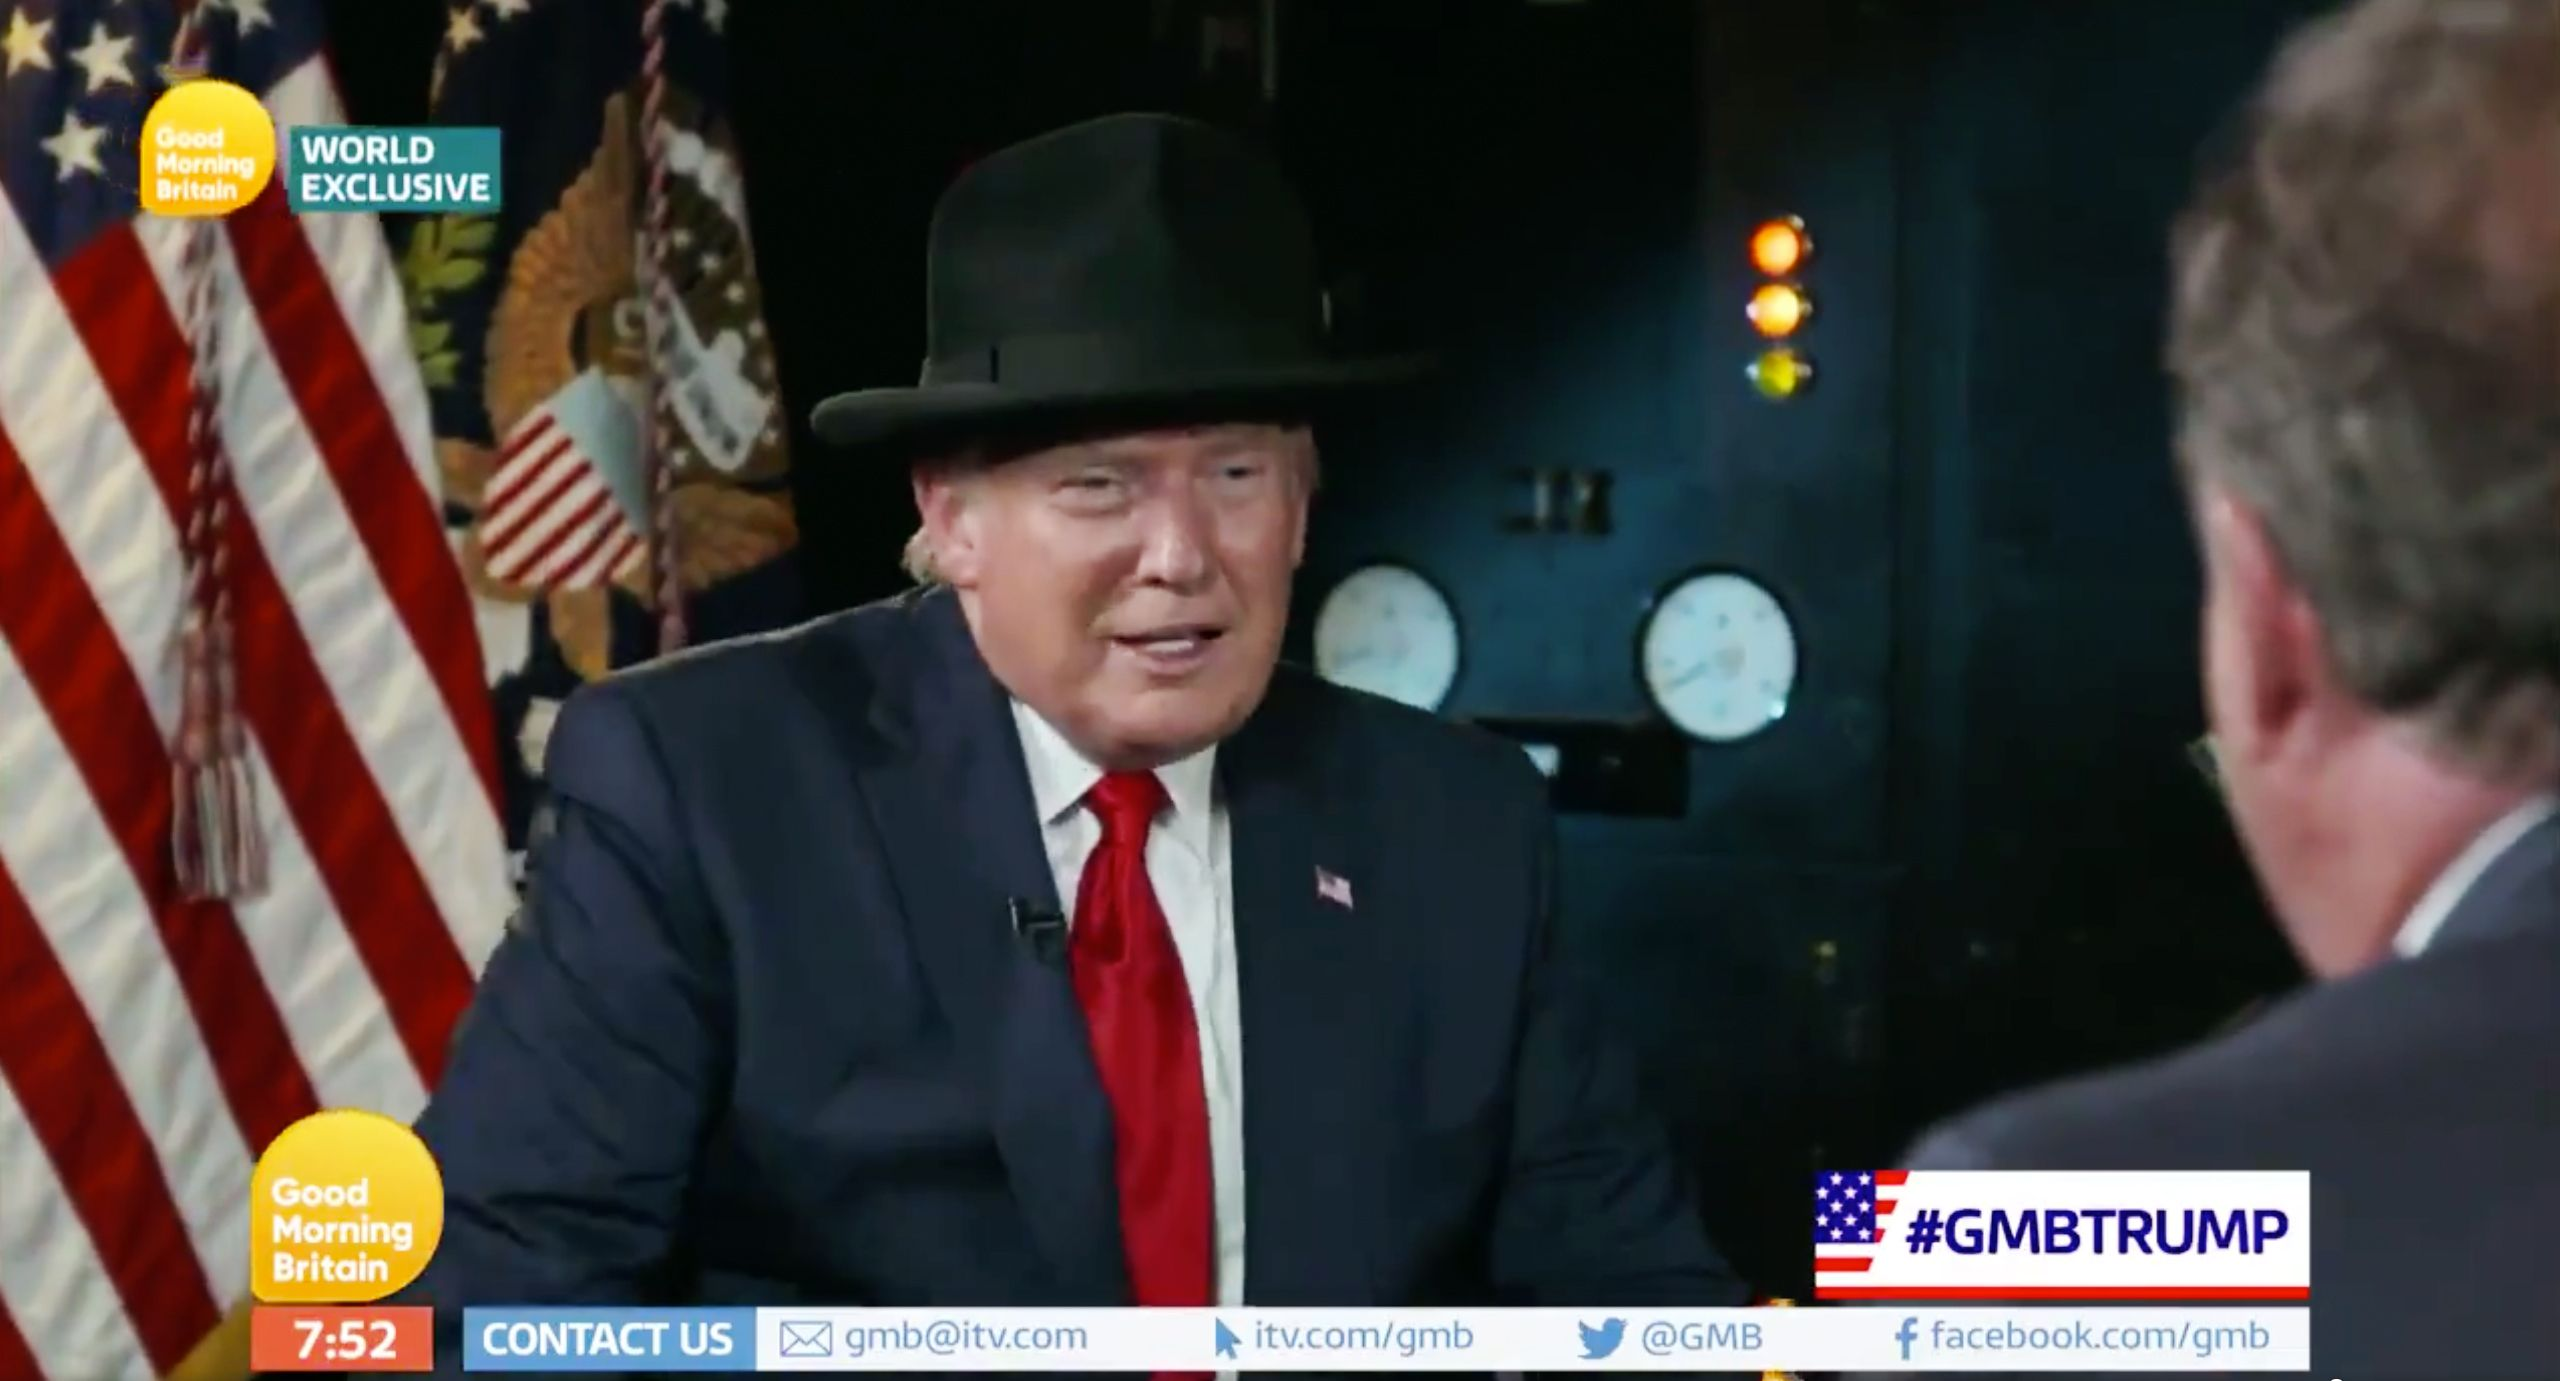 Donald Trump Receives Winston Church-Style Hat Gift From